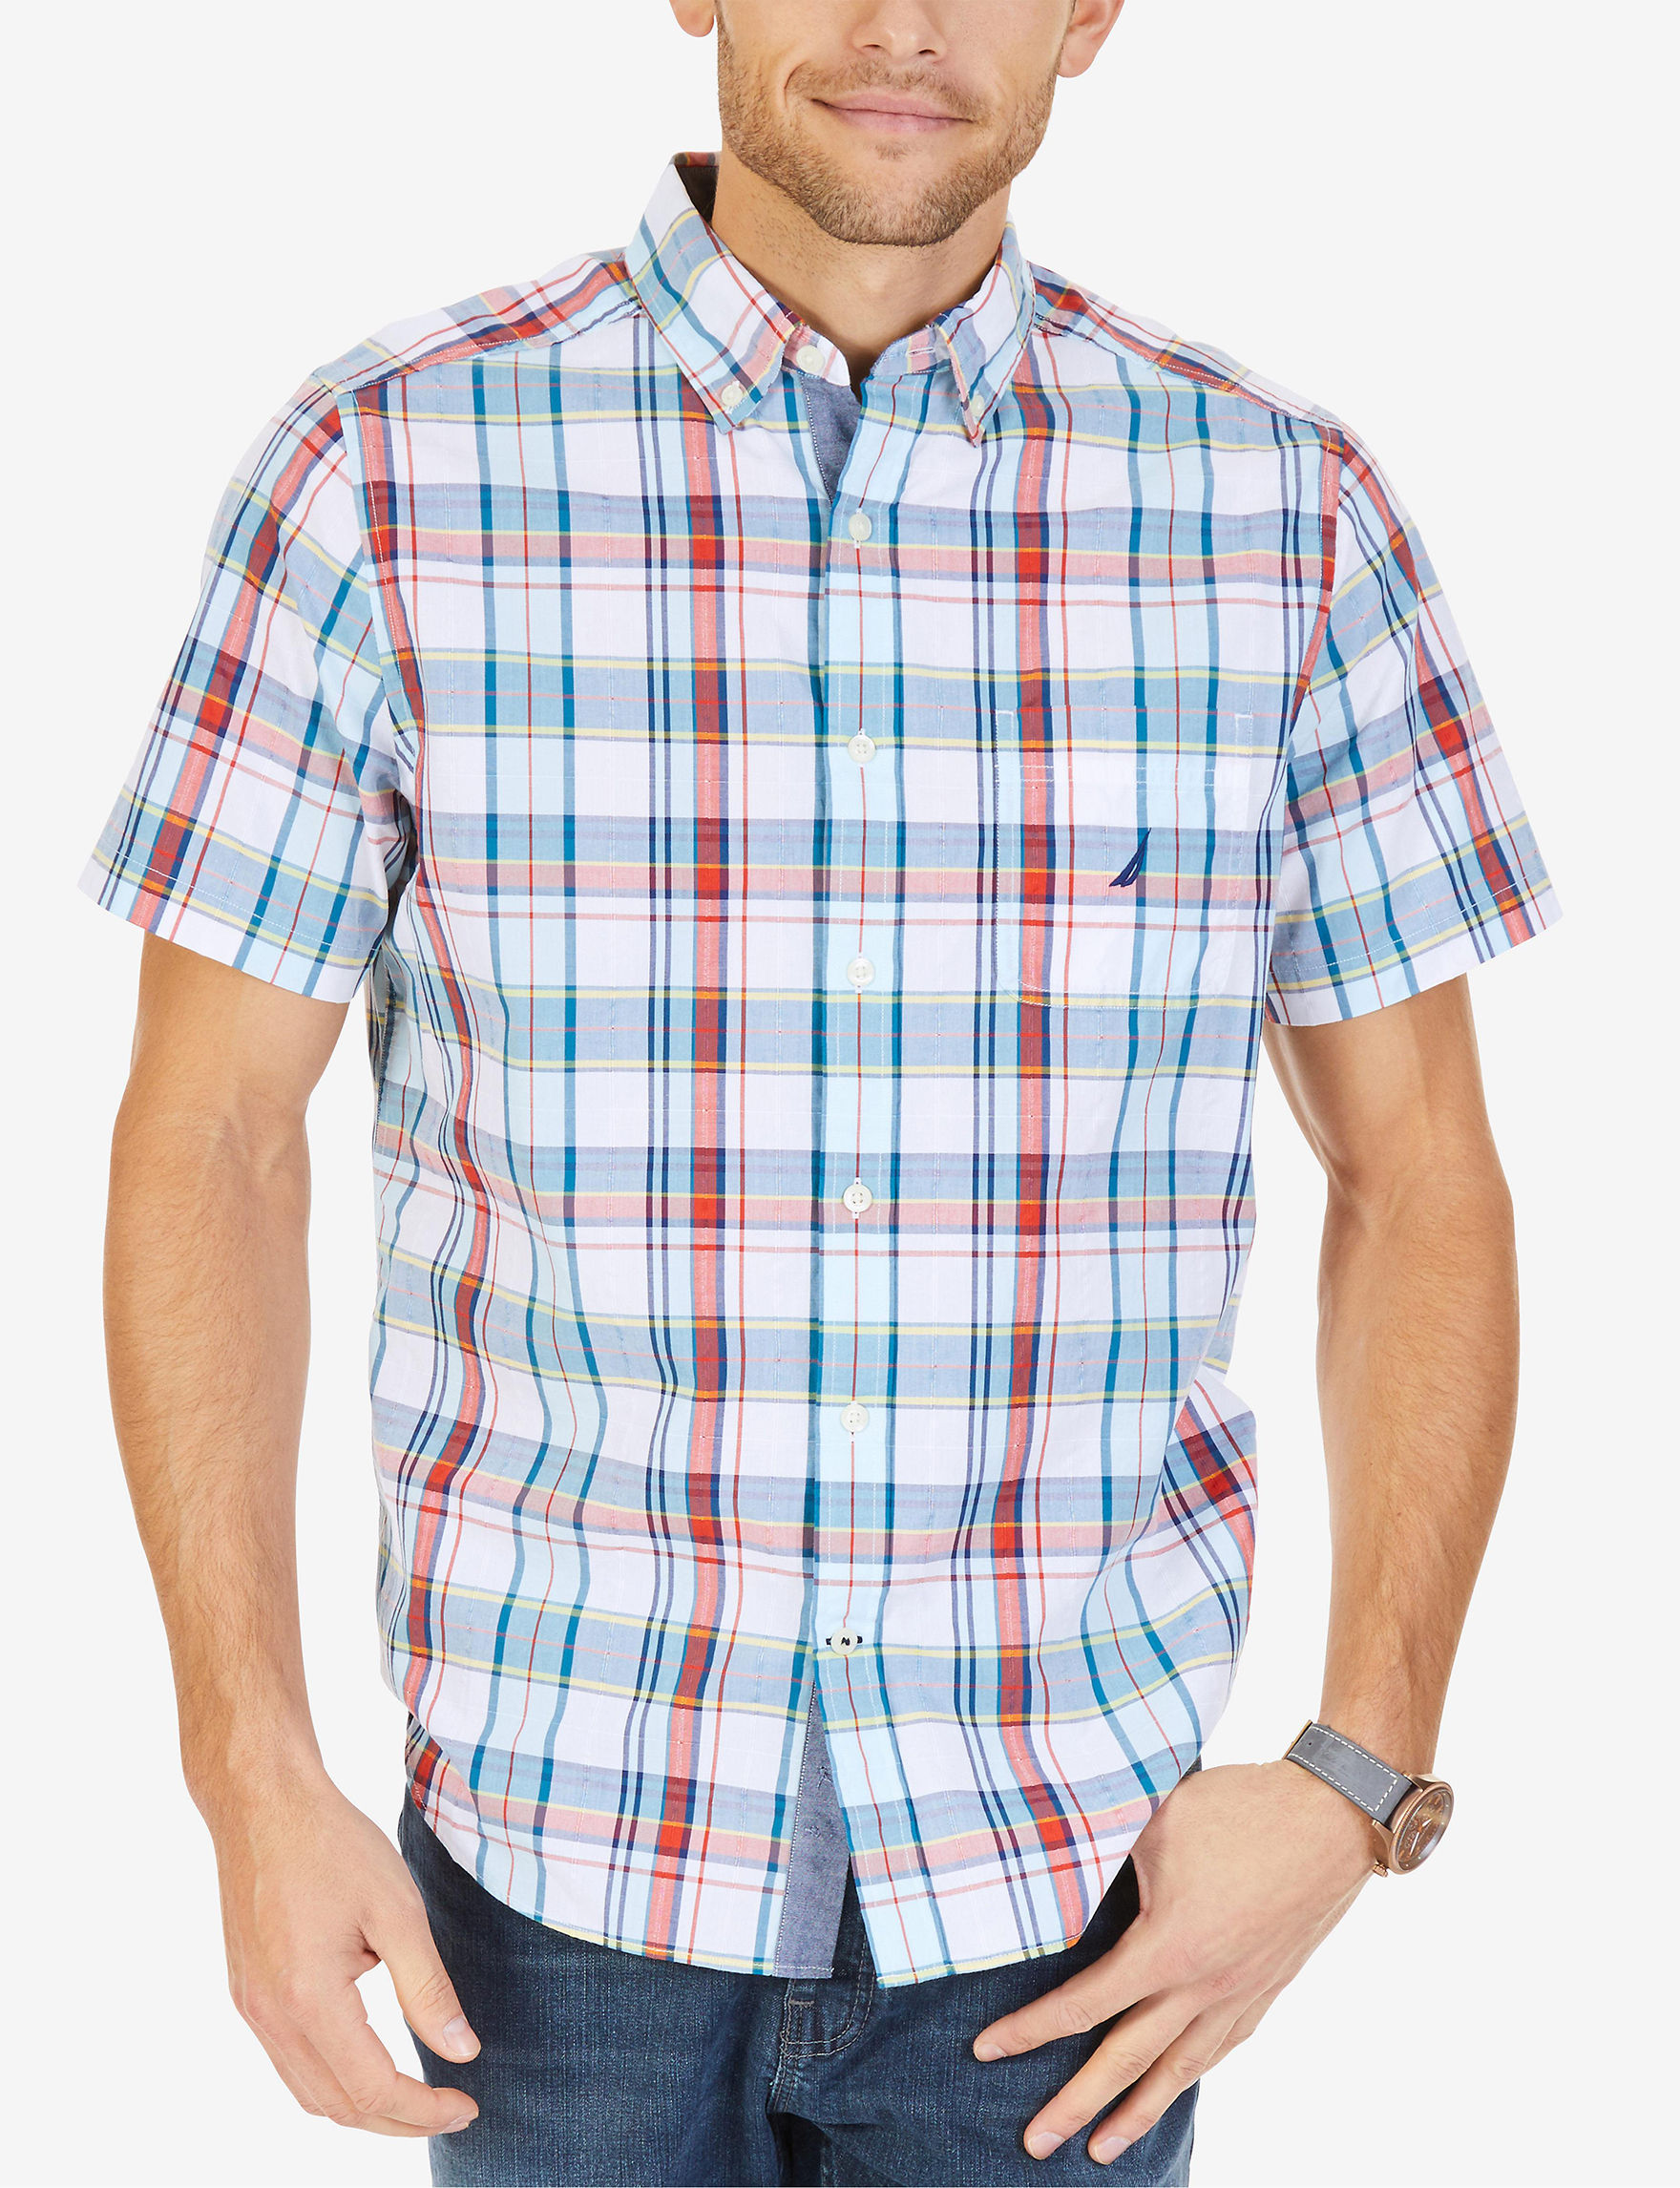 Nautica White / Navy / Red Casual Button Down Shirts